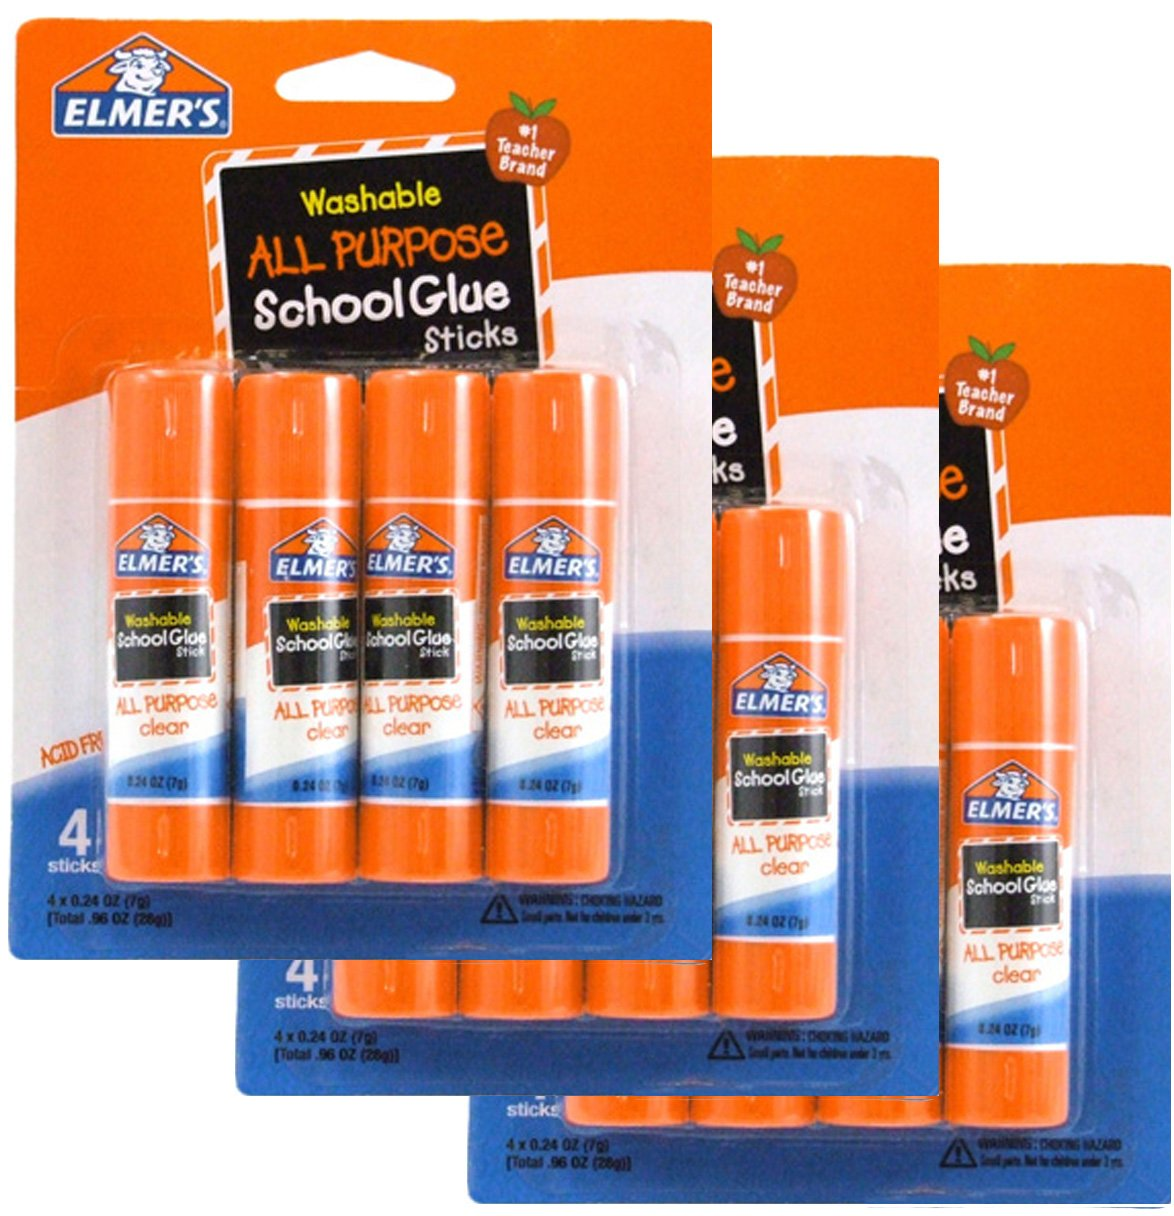 Washable All Purpose School Glue Sticks (4 Pack) [Set of 3] by Elmer's Products Inc Elmer' s Products Inc OP-11290